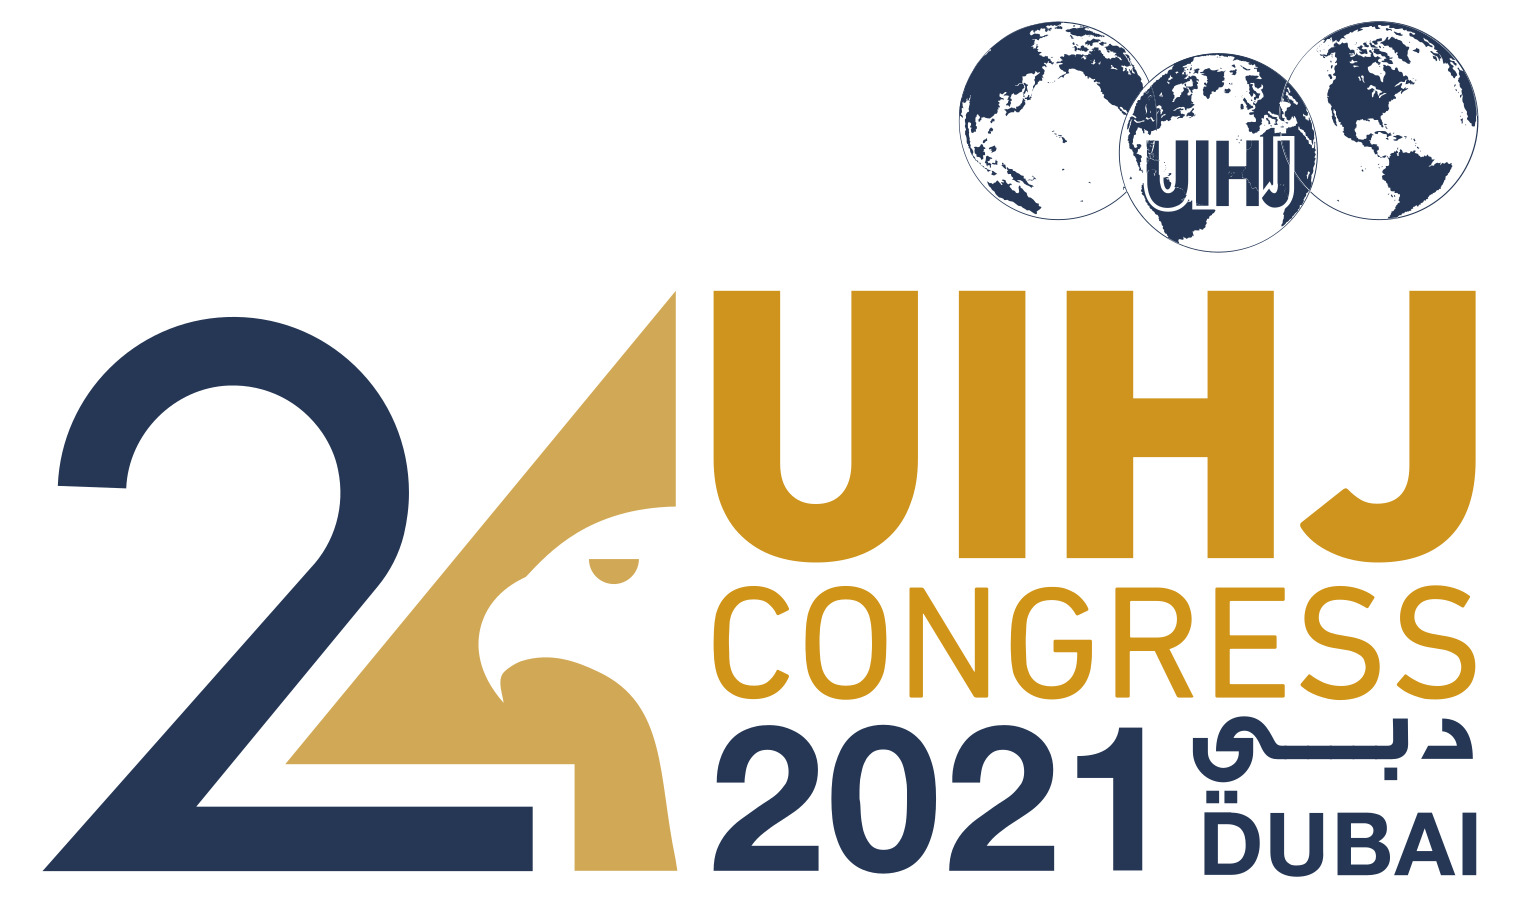 The International Congress of the UIHJ is approaching!